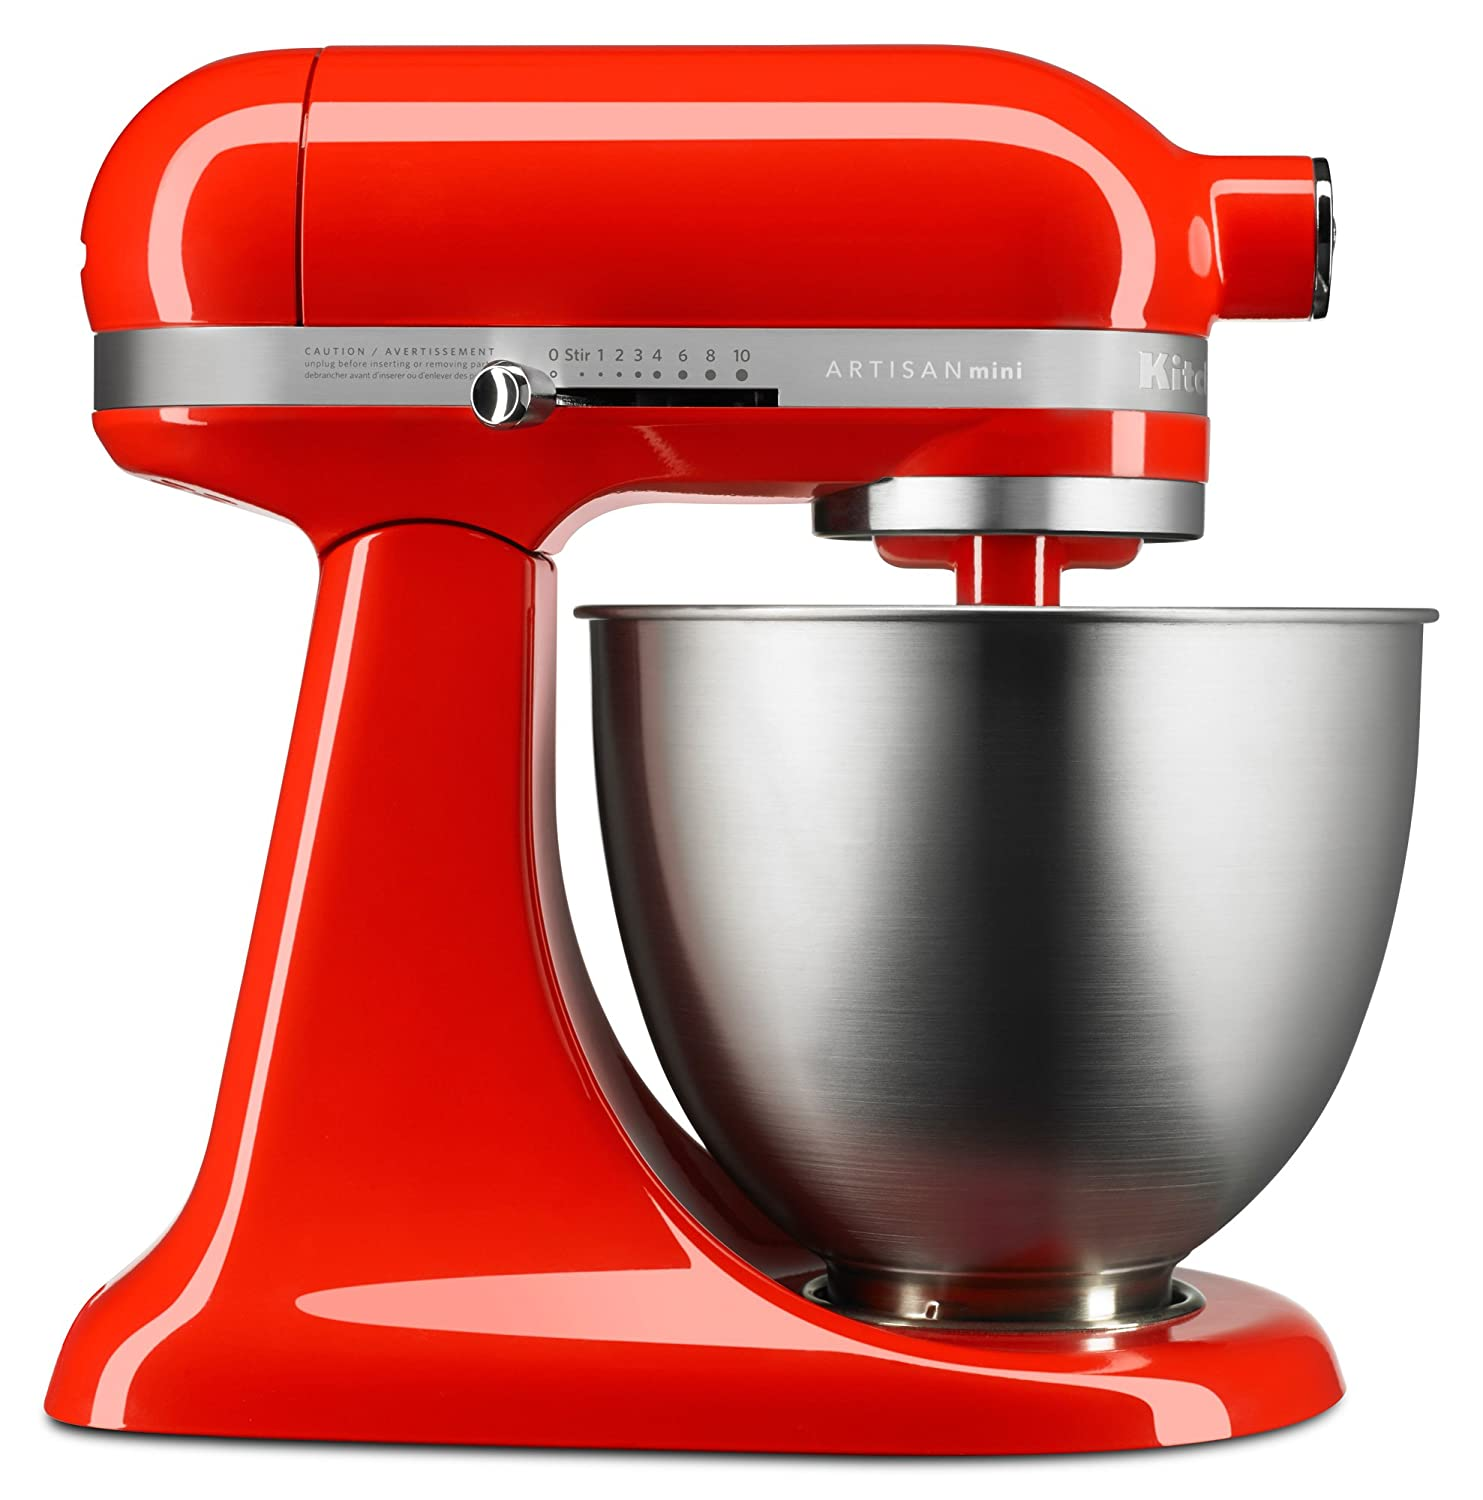 Artisan Mini Series Tilt-Head Stand Mixer, 3.5 quart, Hot Sauce